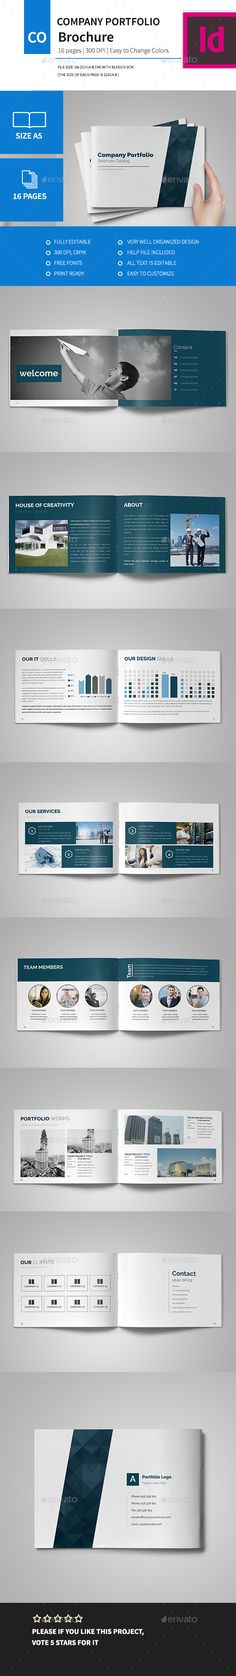 Mini Business Plan Digital Template Business planning, Graphics - financial plan template